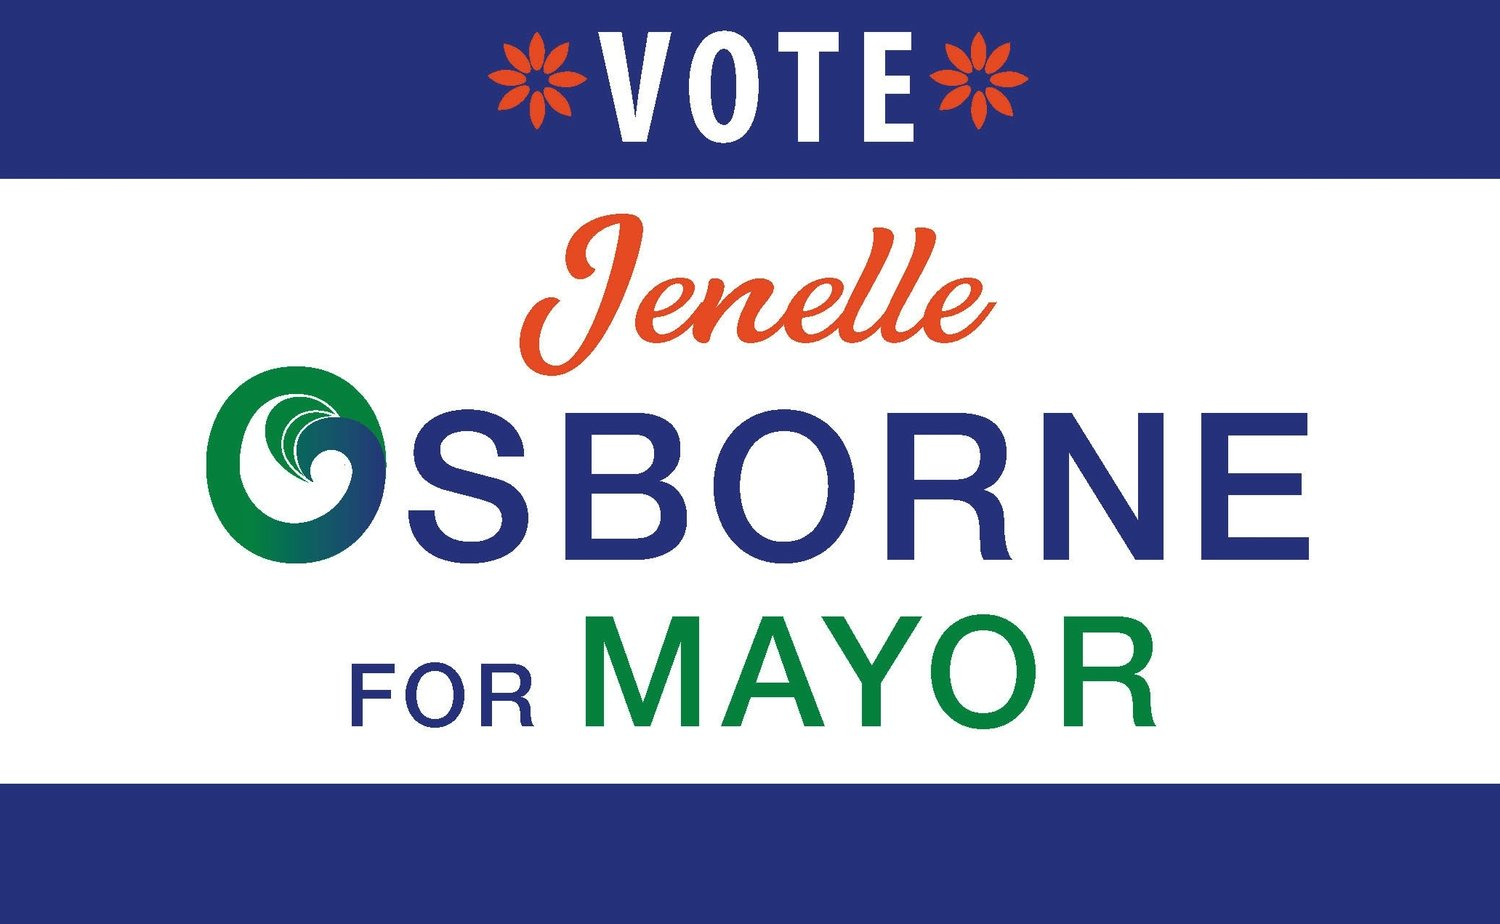 Jenelle Osborne for Mayor